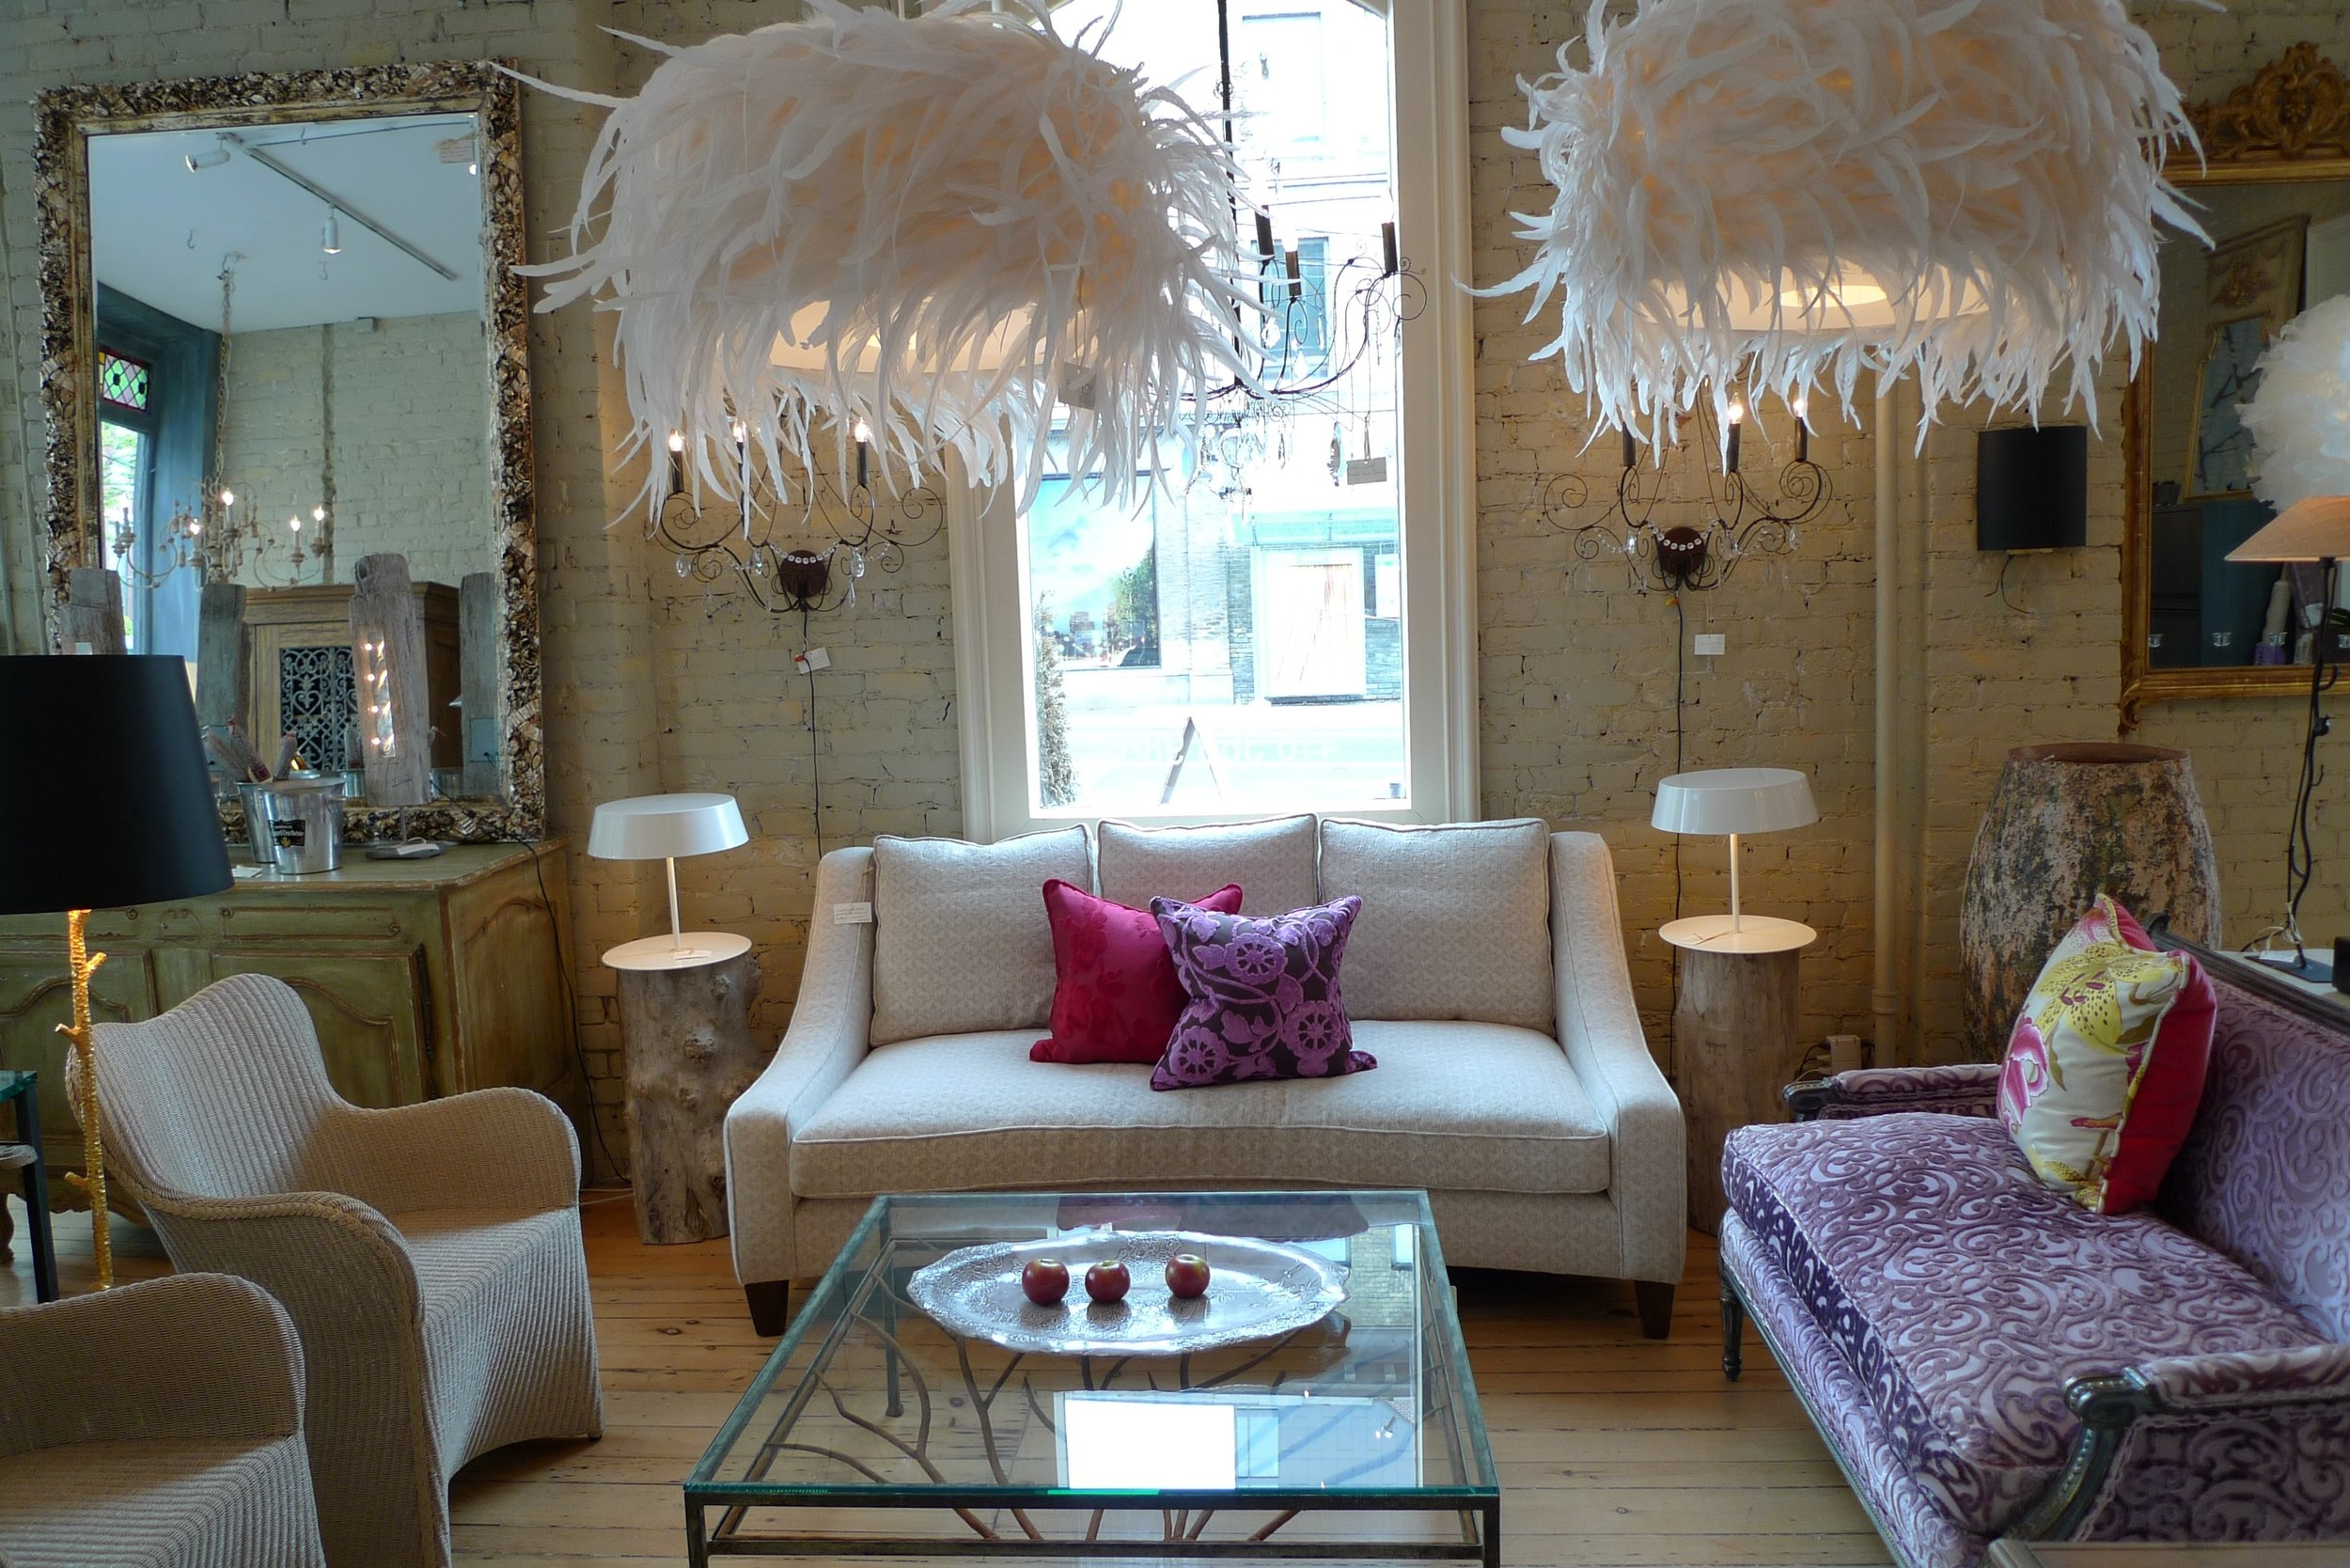 Feathered Lamps